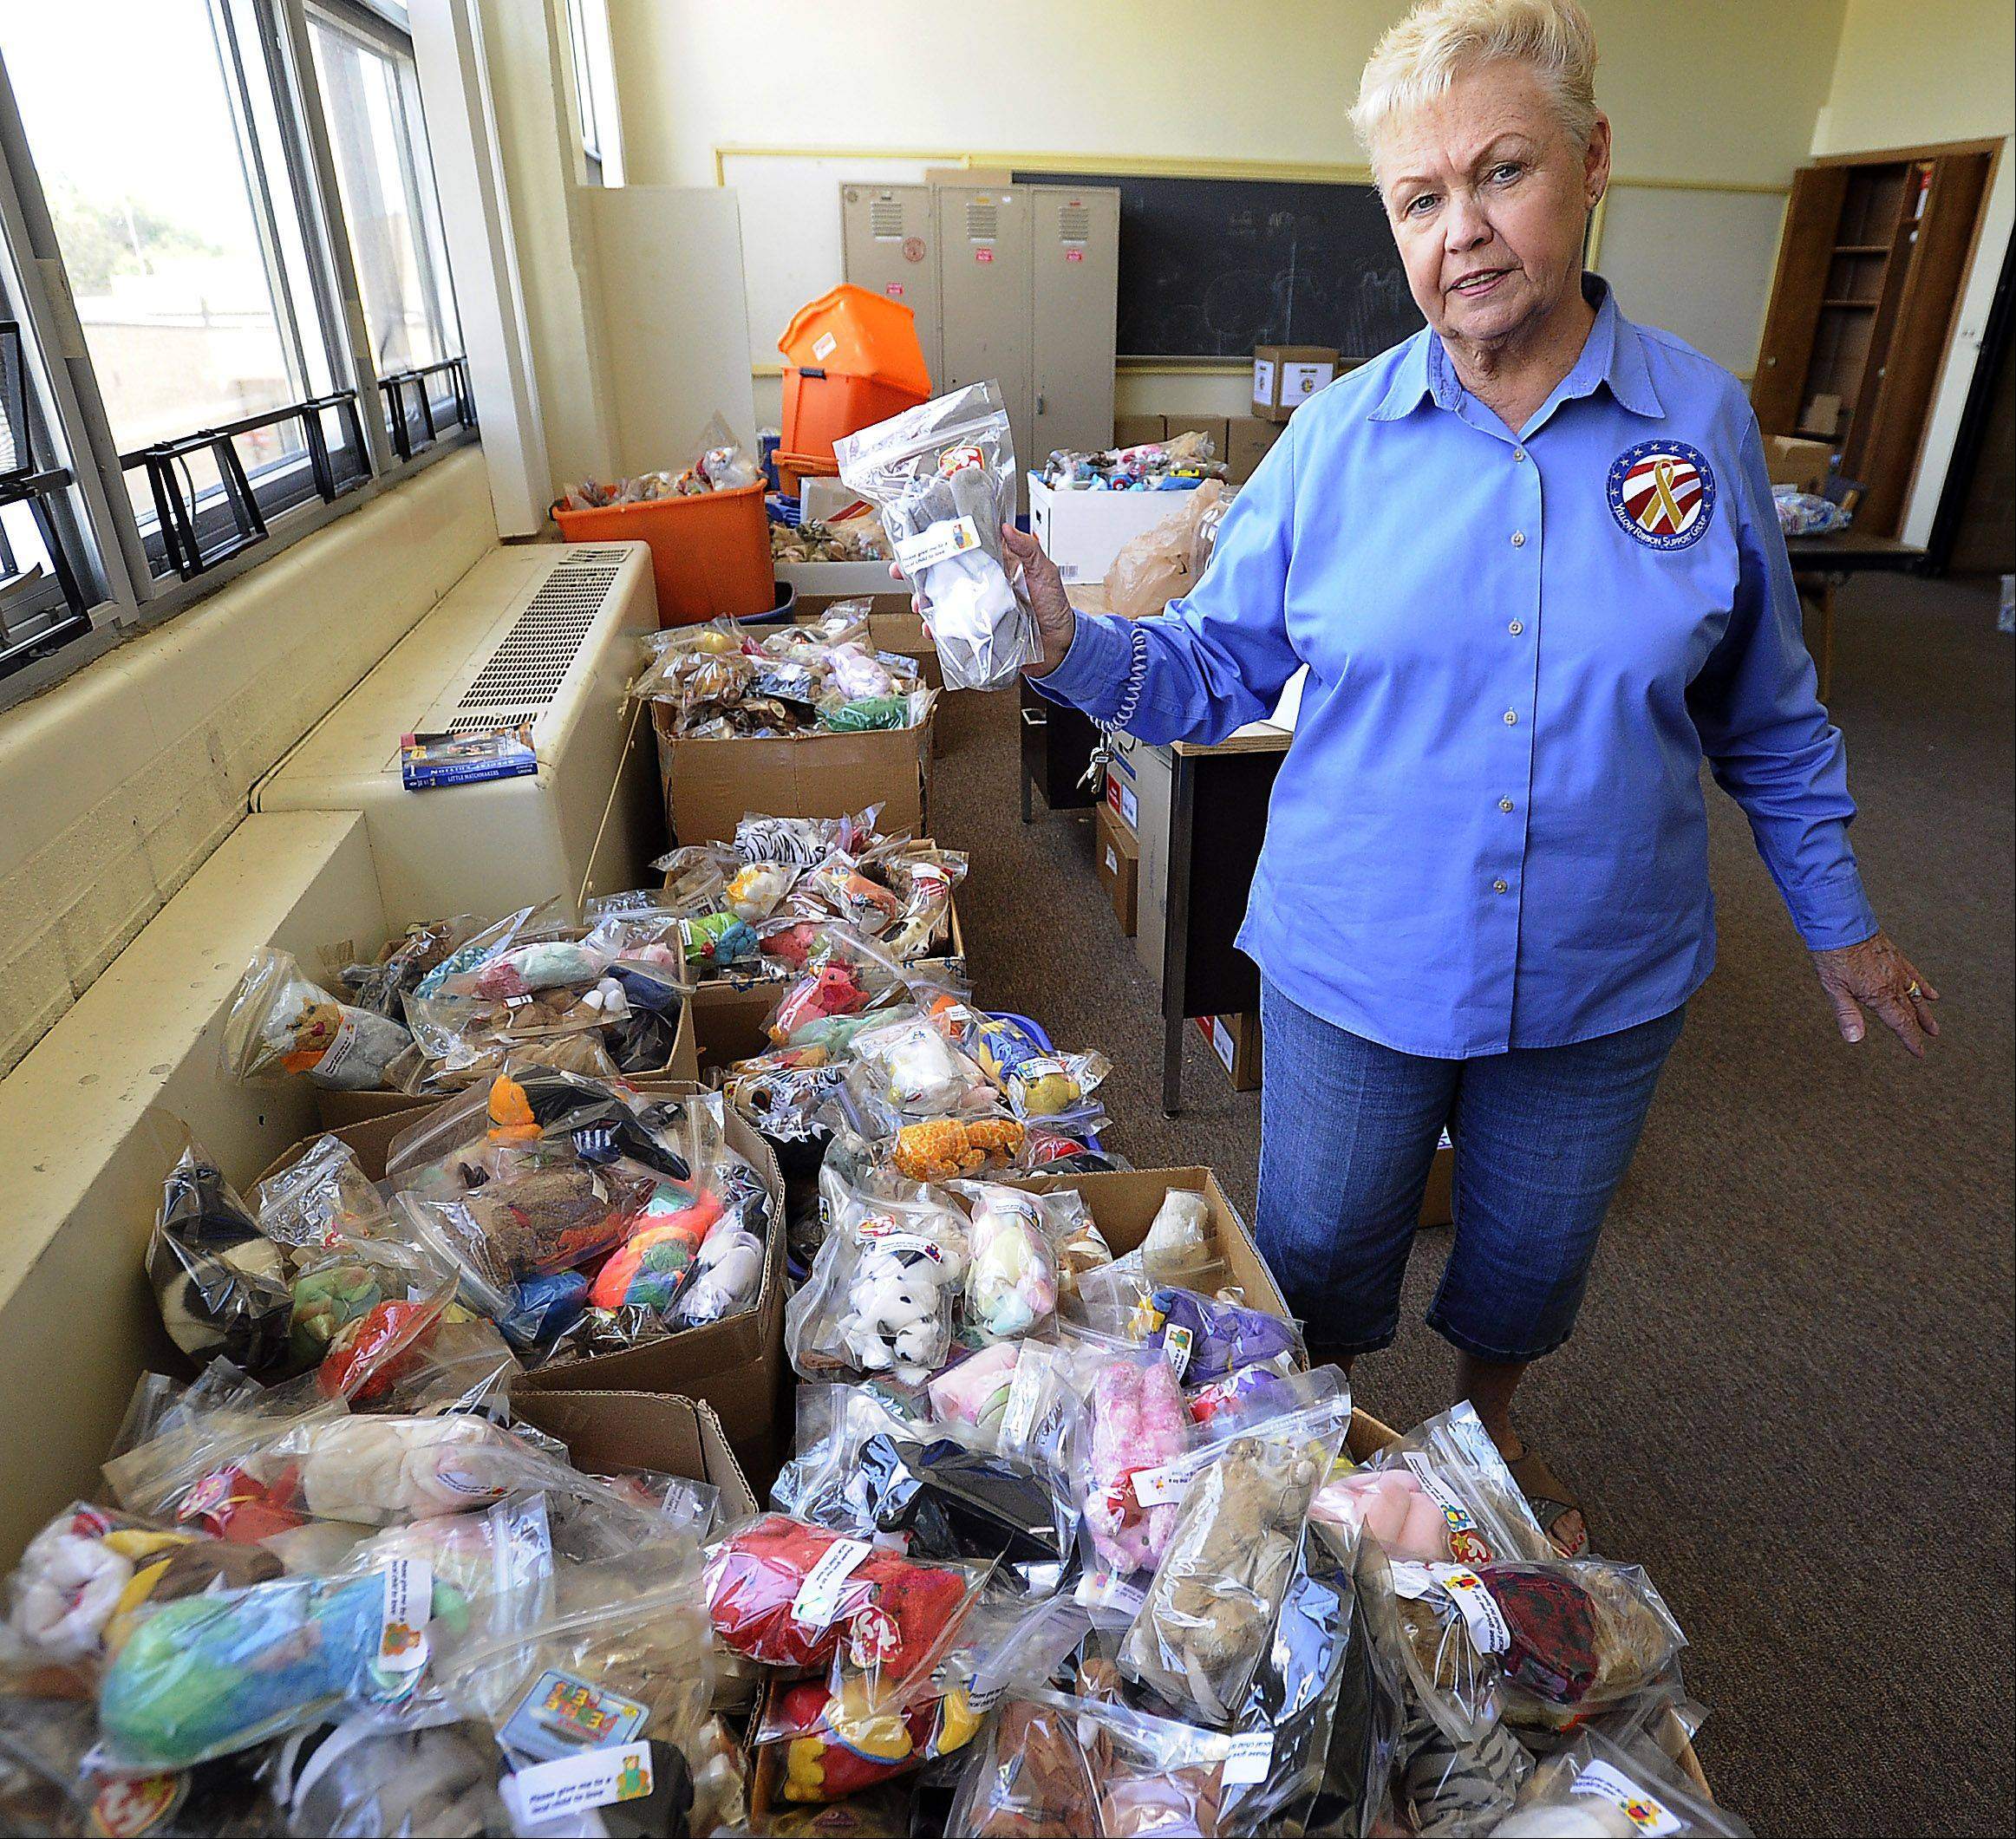 Yellow Ribbon Support Group co-founder Pat McCoy of Palatine sorts through the remaining supply of Beanie Babies that have been sent to American troops who give them to children they encounter overseas. She and husband Mac McCoy are shutting down the nonprofit organization after more than 10 years.